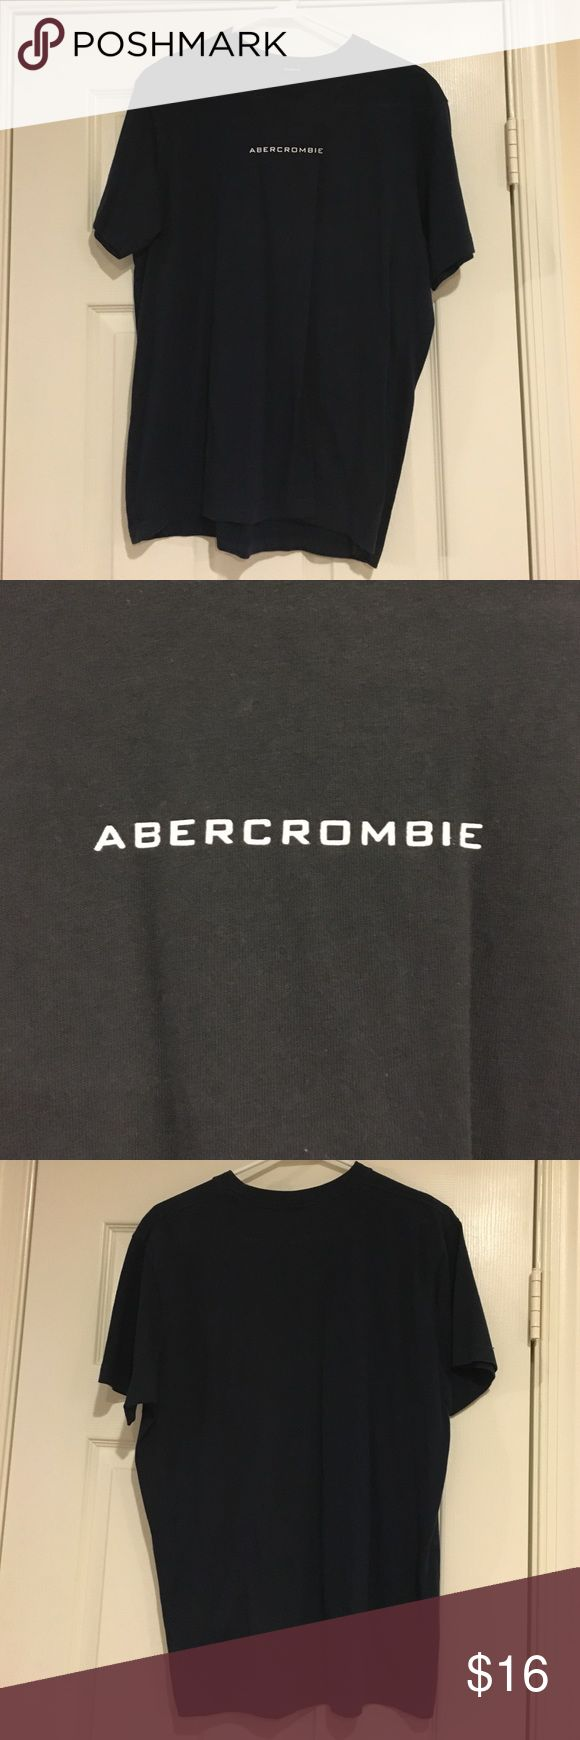 Mens Abercrombie and Fitch TShirt Navy Blue Tshirt Abercrombie & Fitch Shirts Tees - Short Sleeve